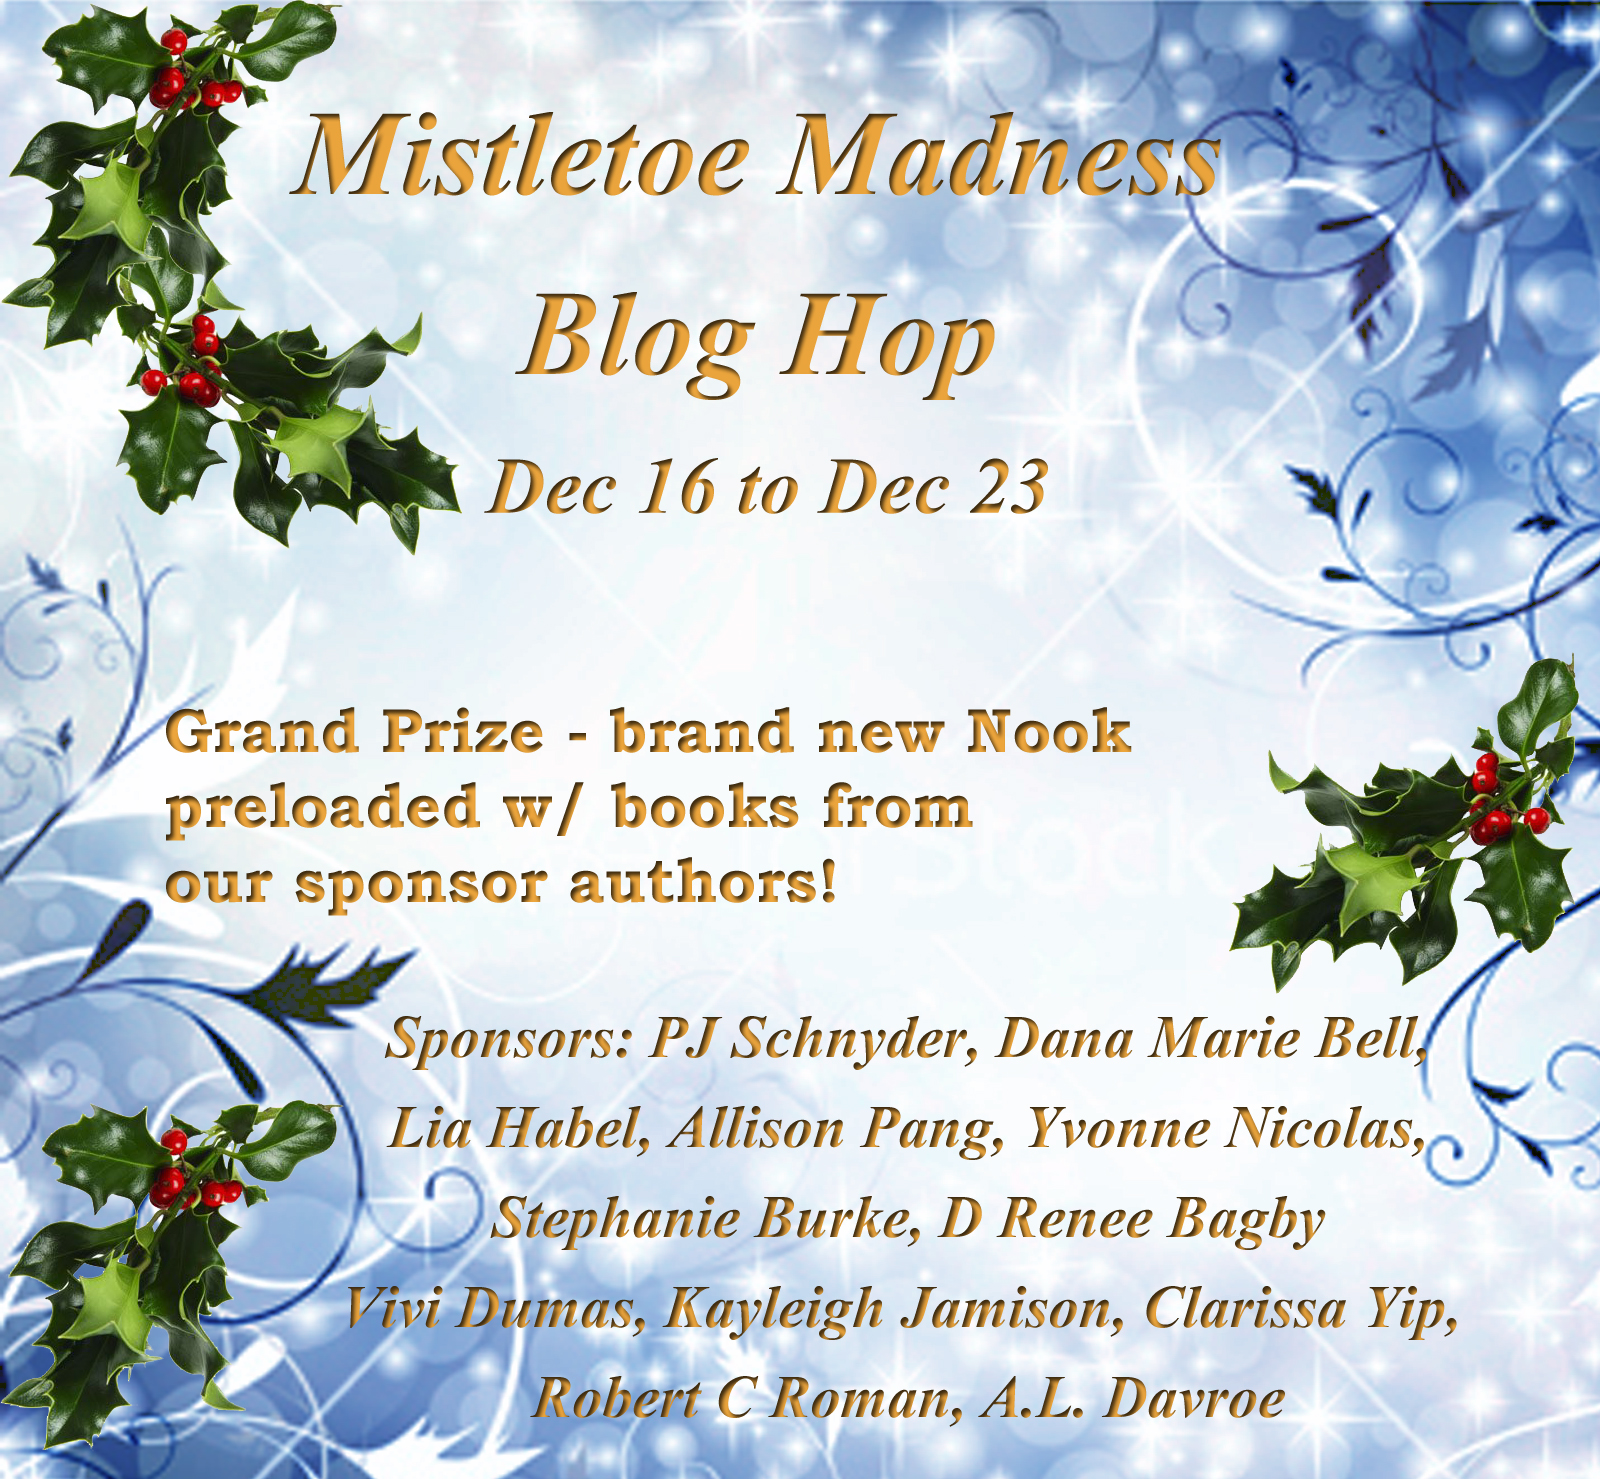 Mistletoe Madness 2011